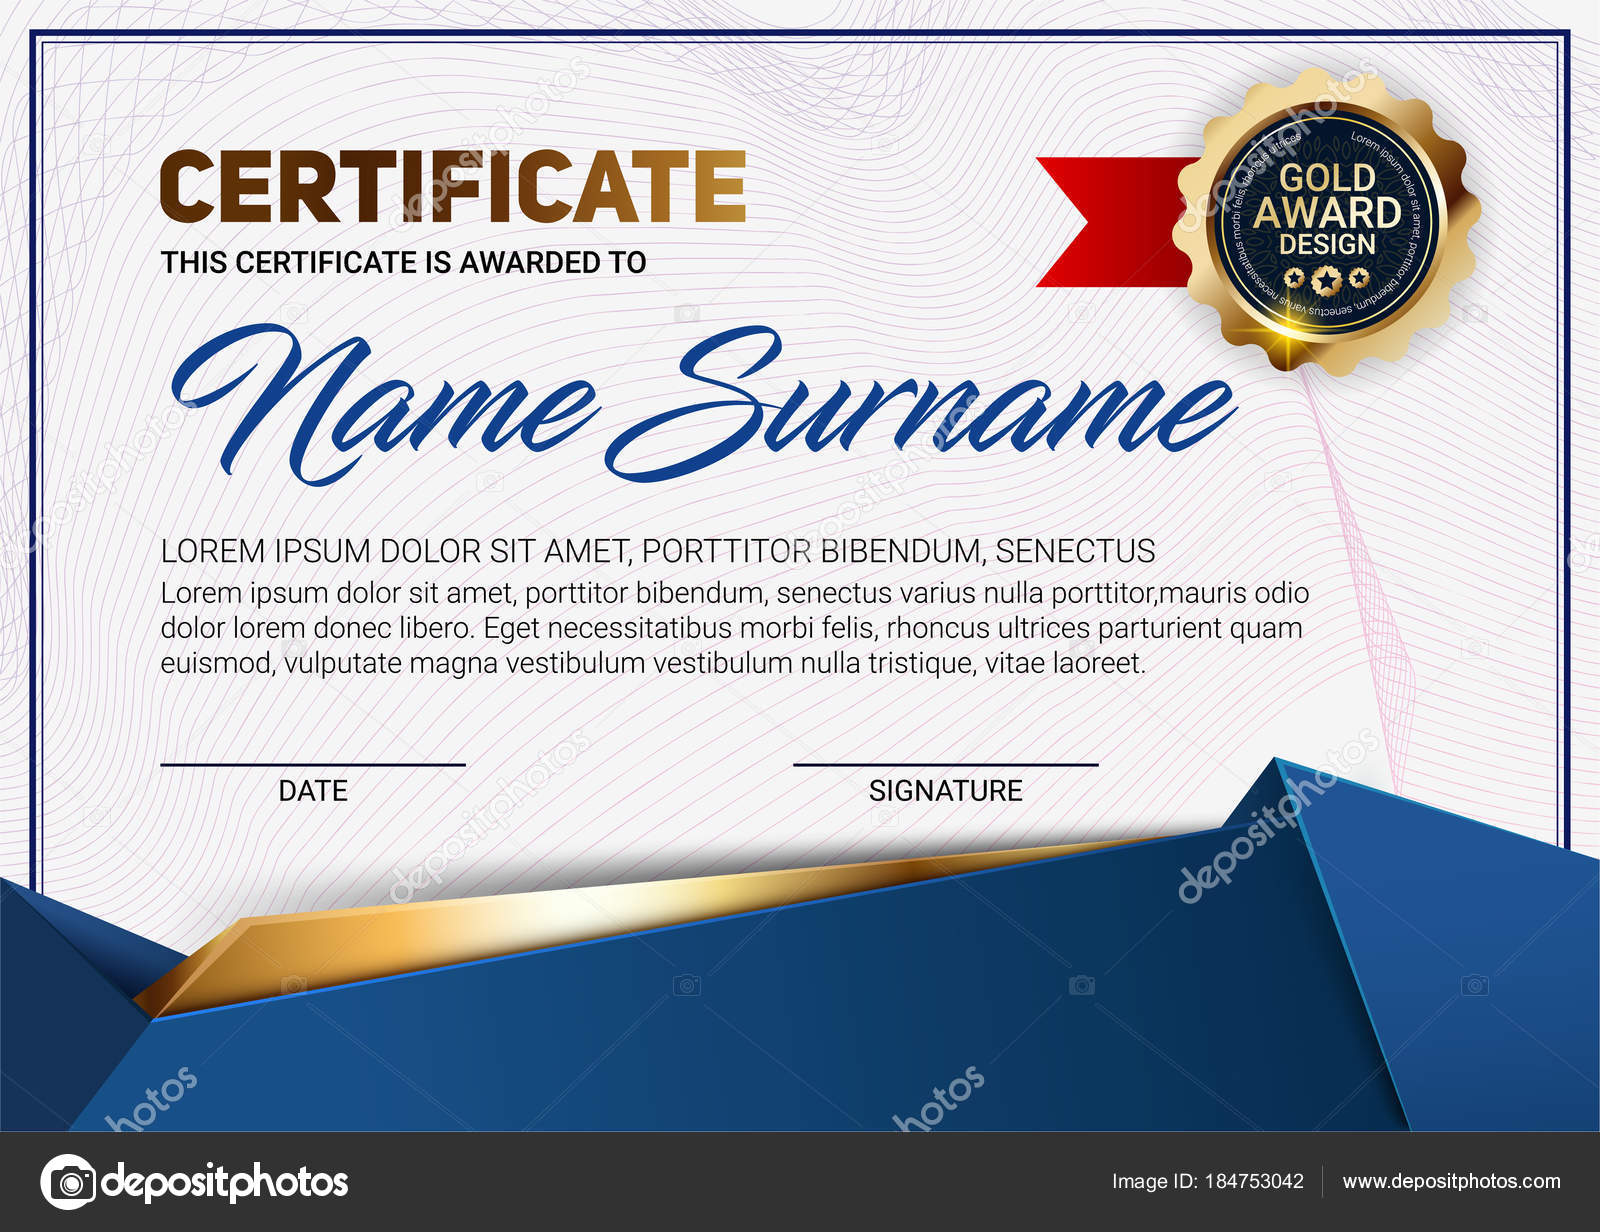 Vector certificate or diploma template with luxury line pattern and vector certificate or diploma template with luxury line pattern and gold award emblem vector illustration yelopaper Choice Image